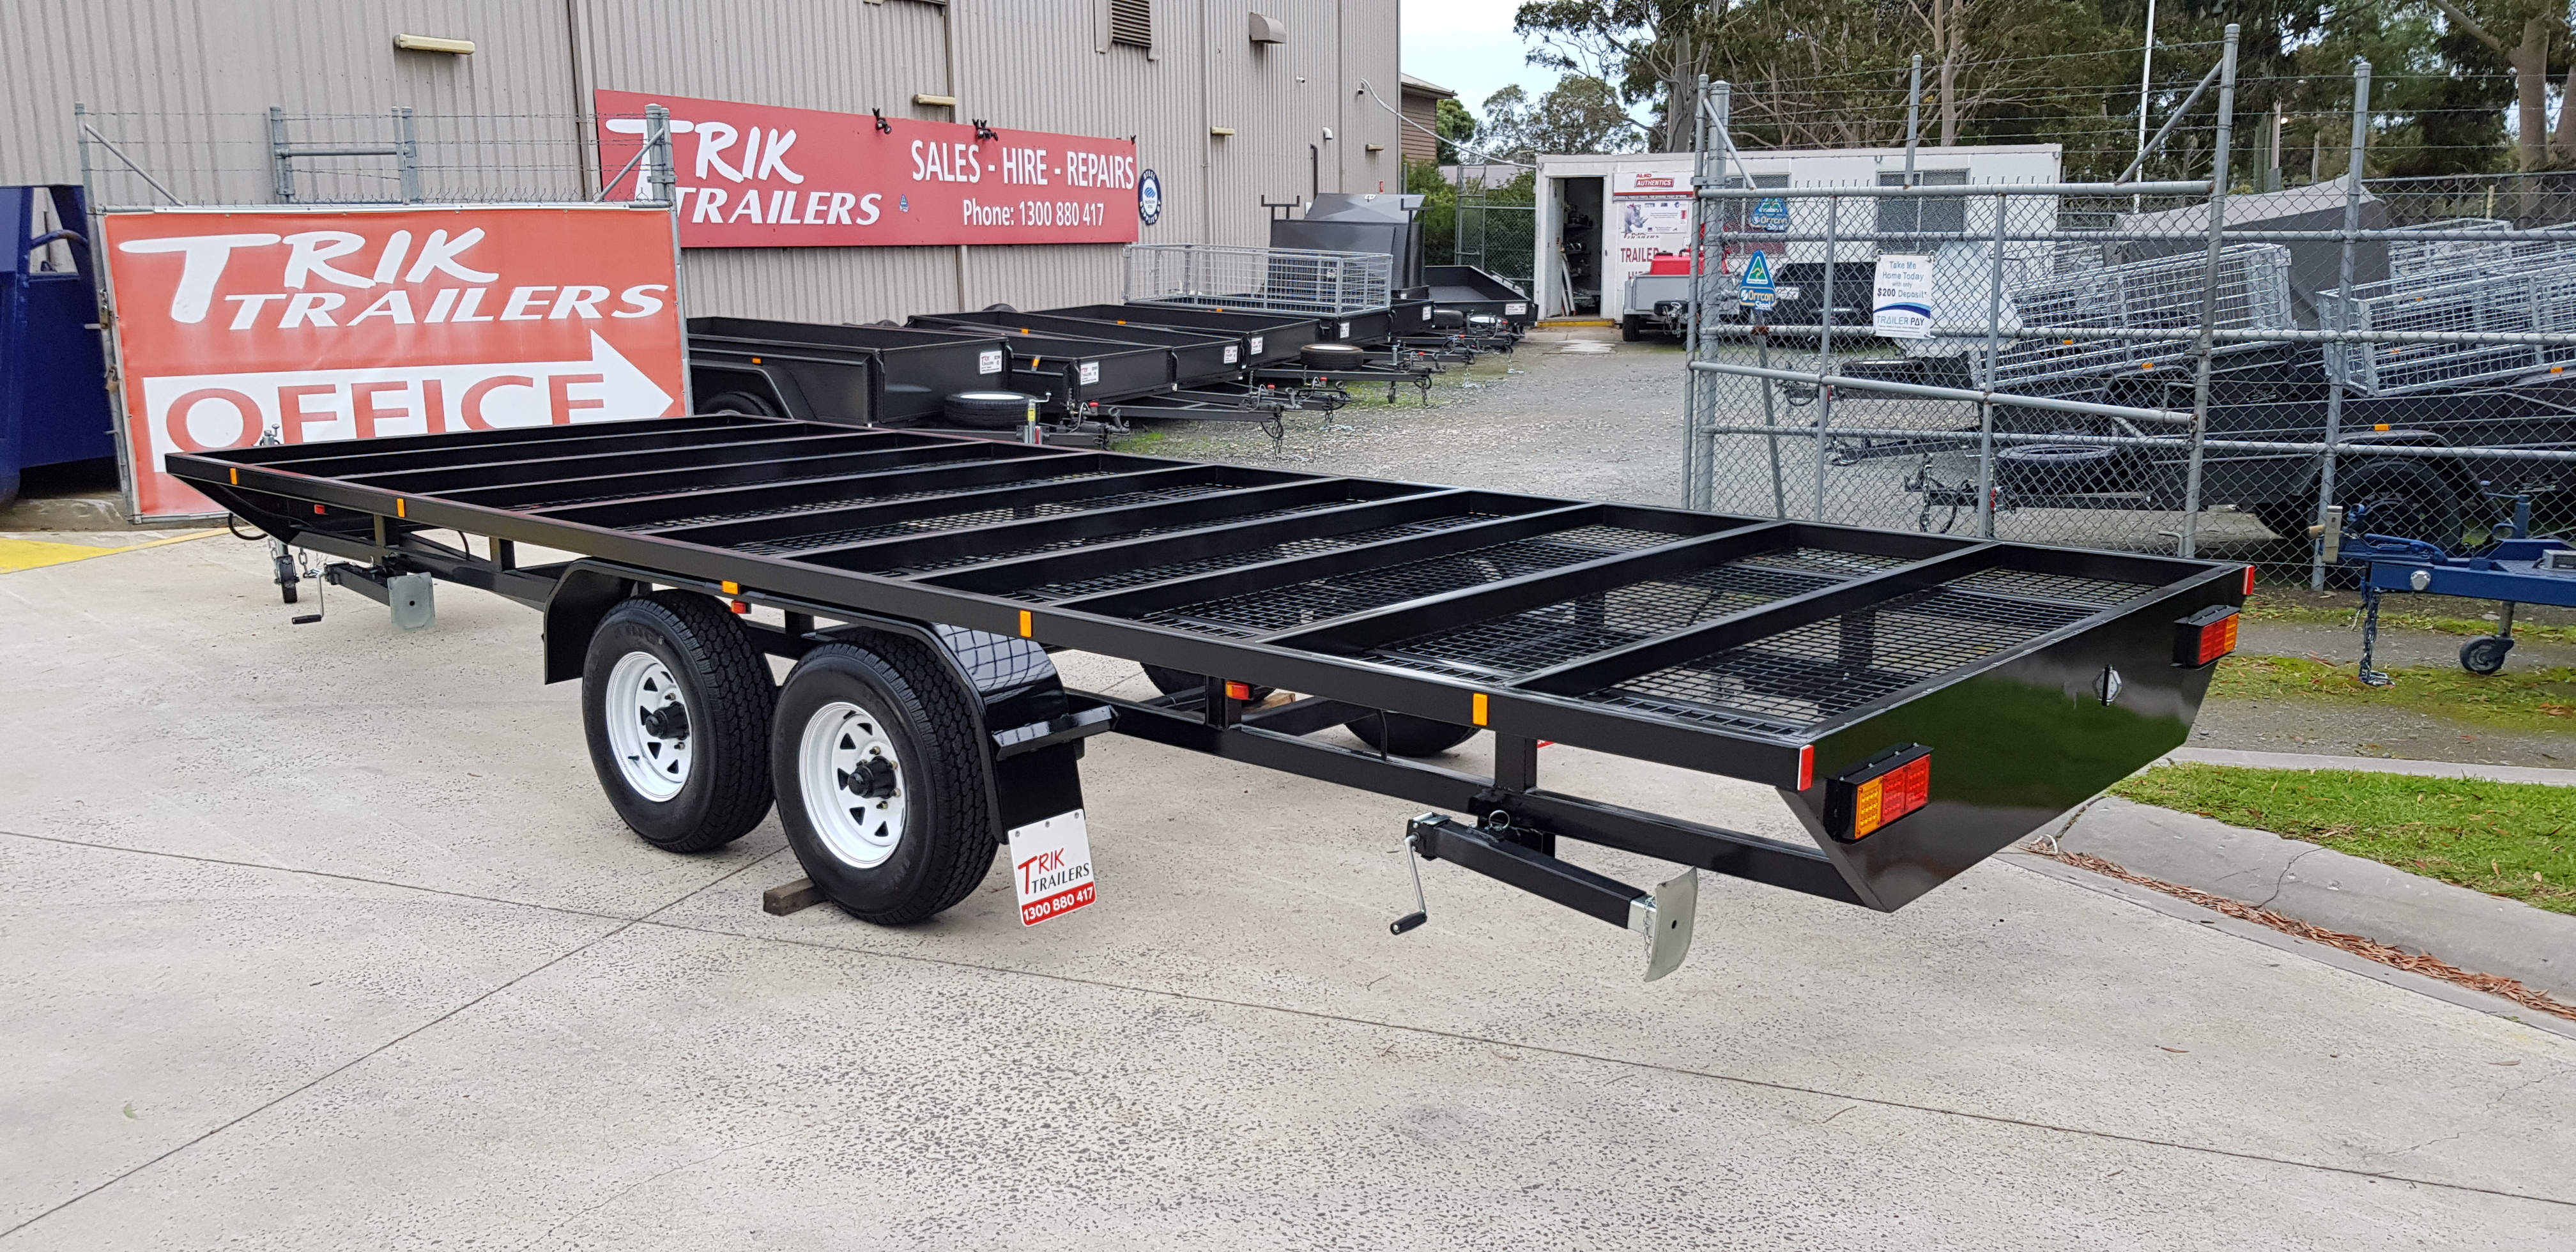 Tiny Home Chassis - Trik Trailers